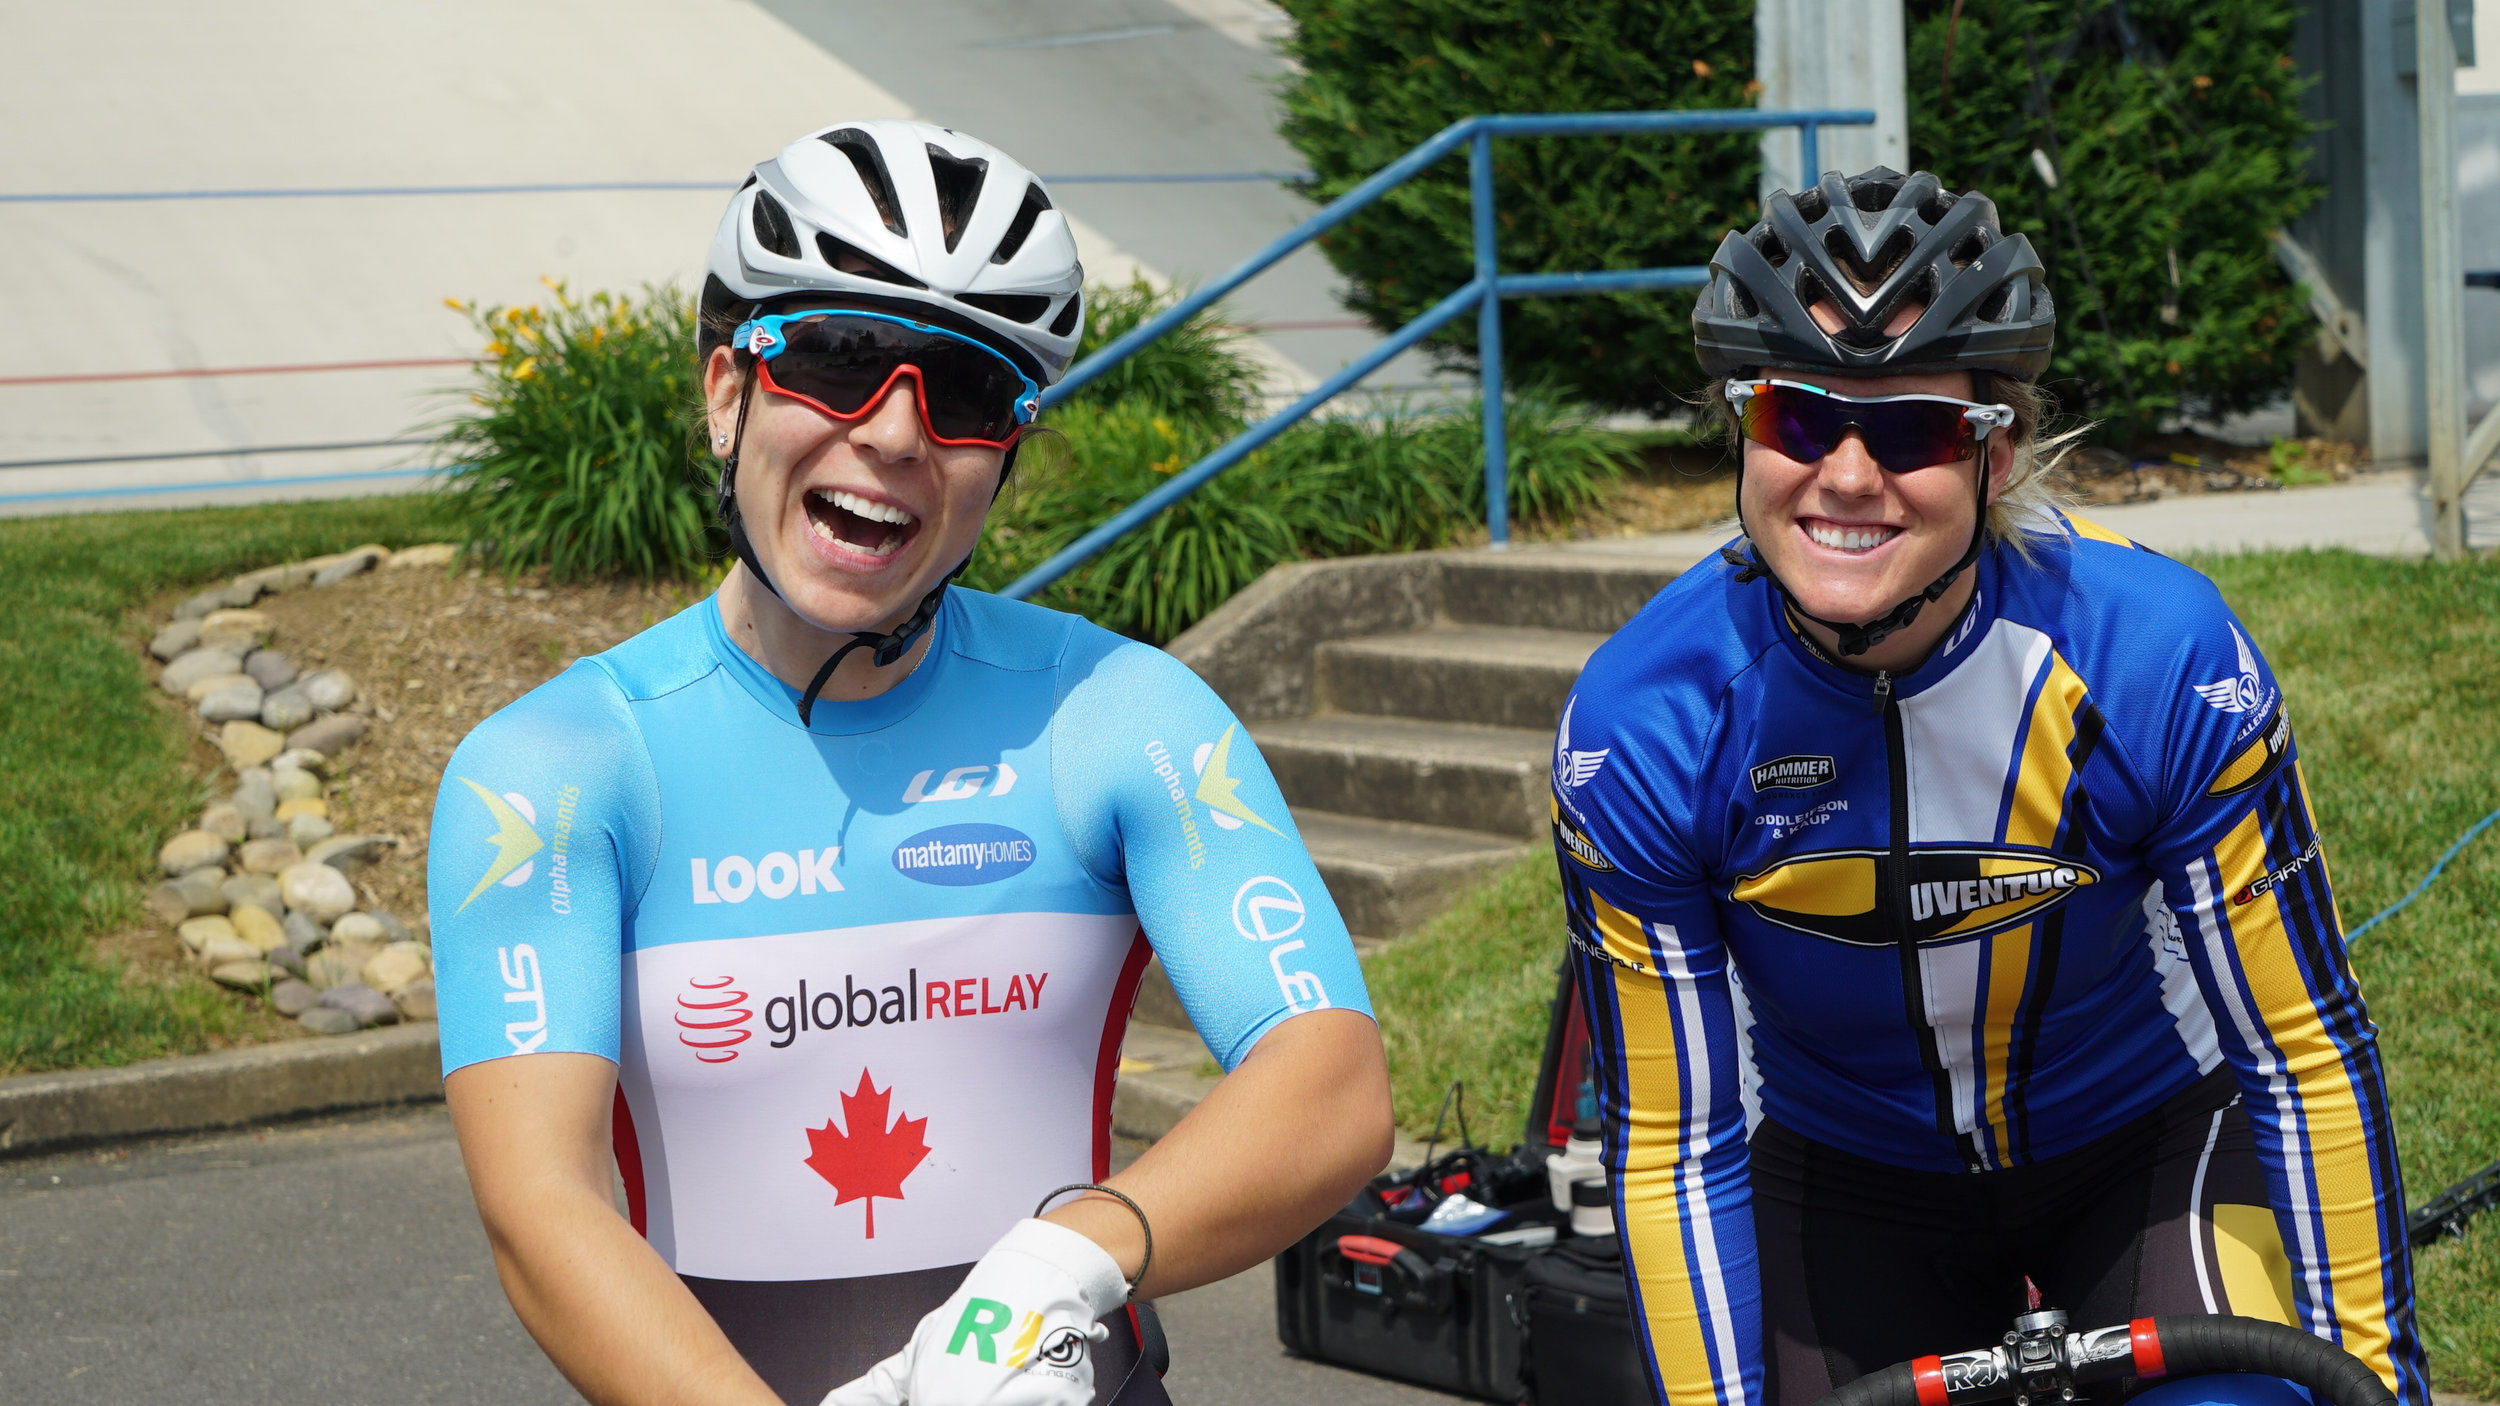 Partnerships - Support Lauriane on her journey to the 2020 Olympic Games